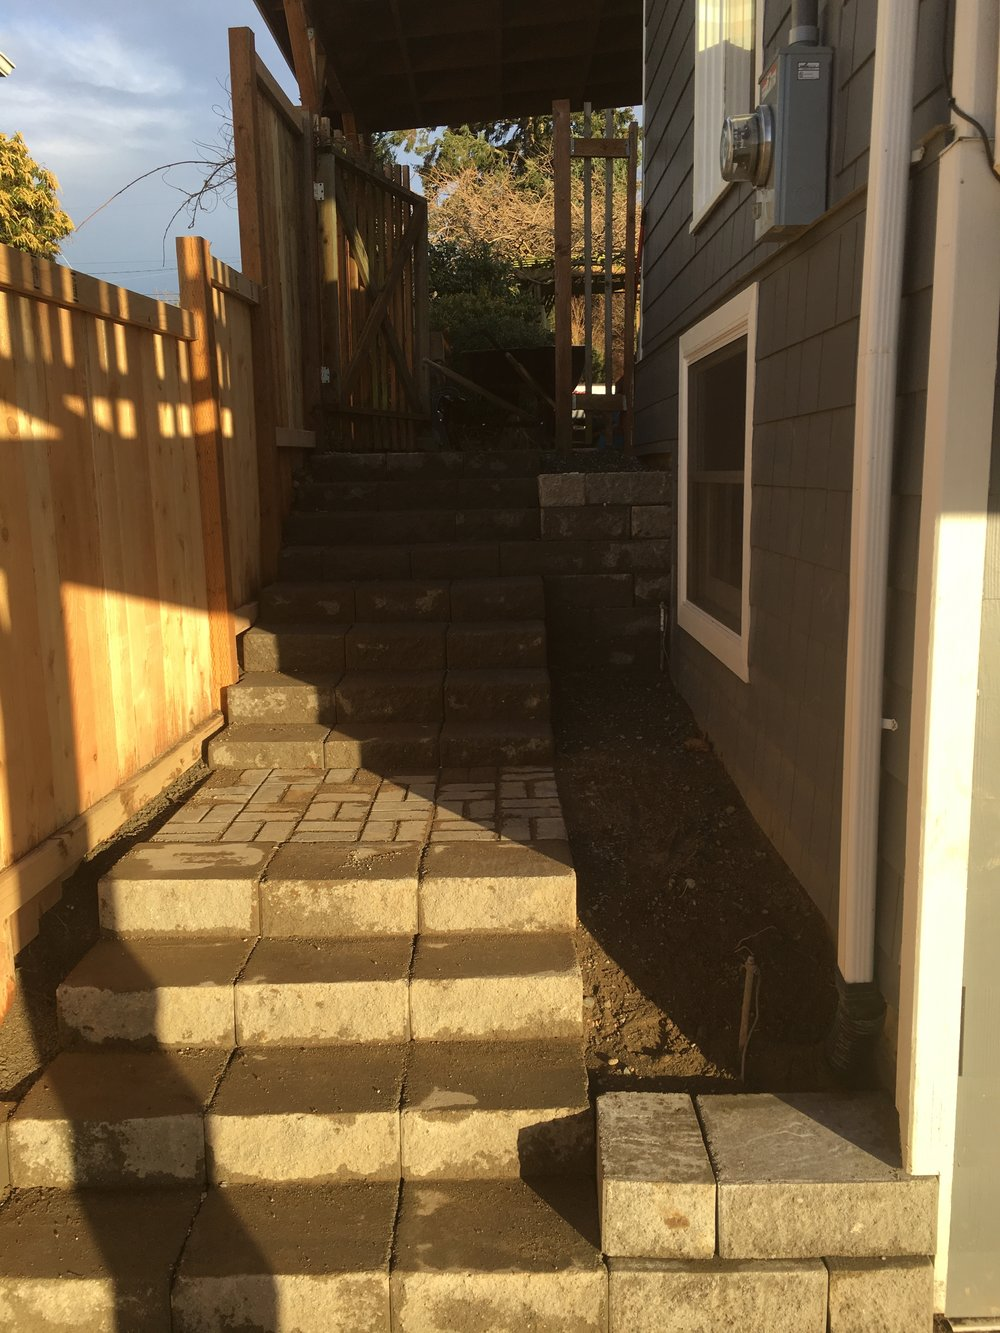 Tore down his old set of stairs and replaced them with new concrete block and retaining wall